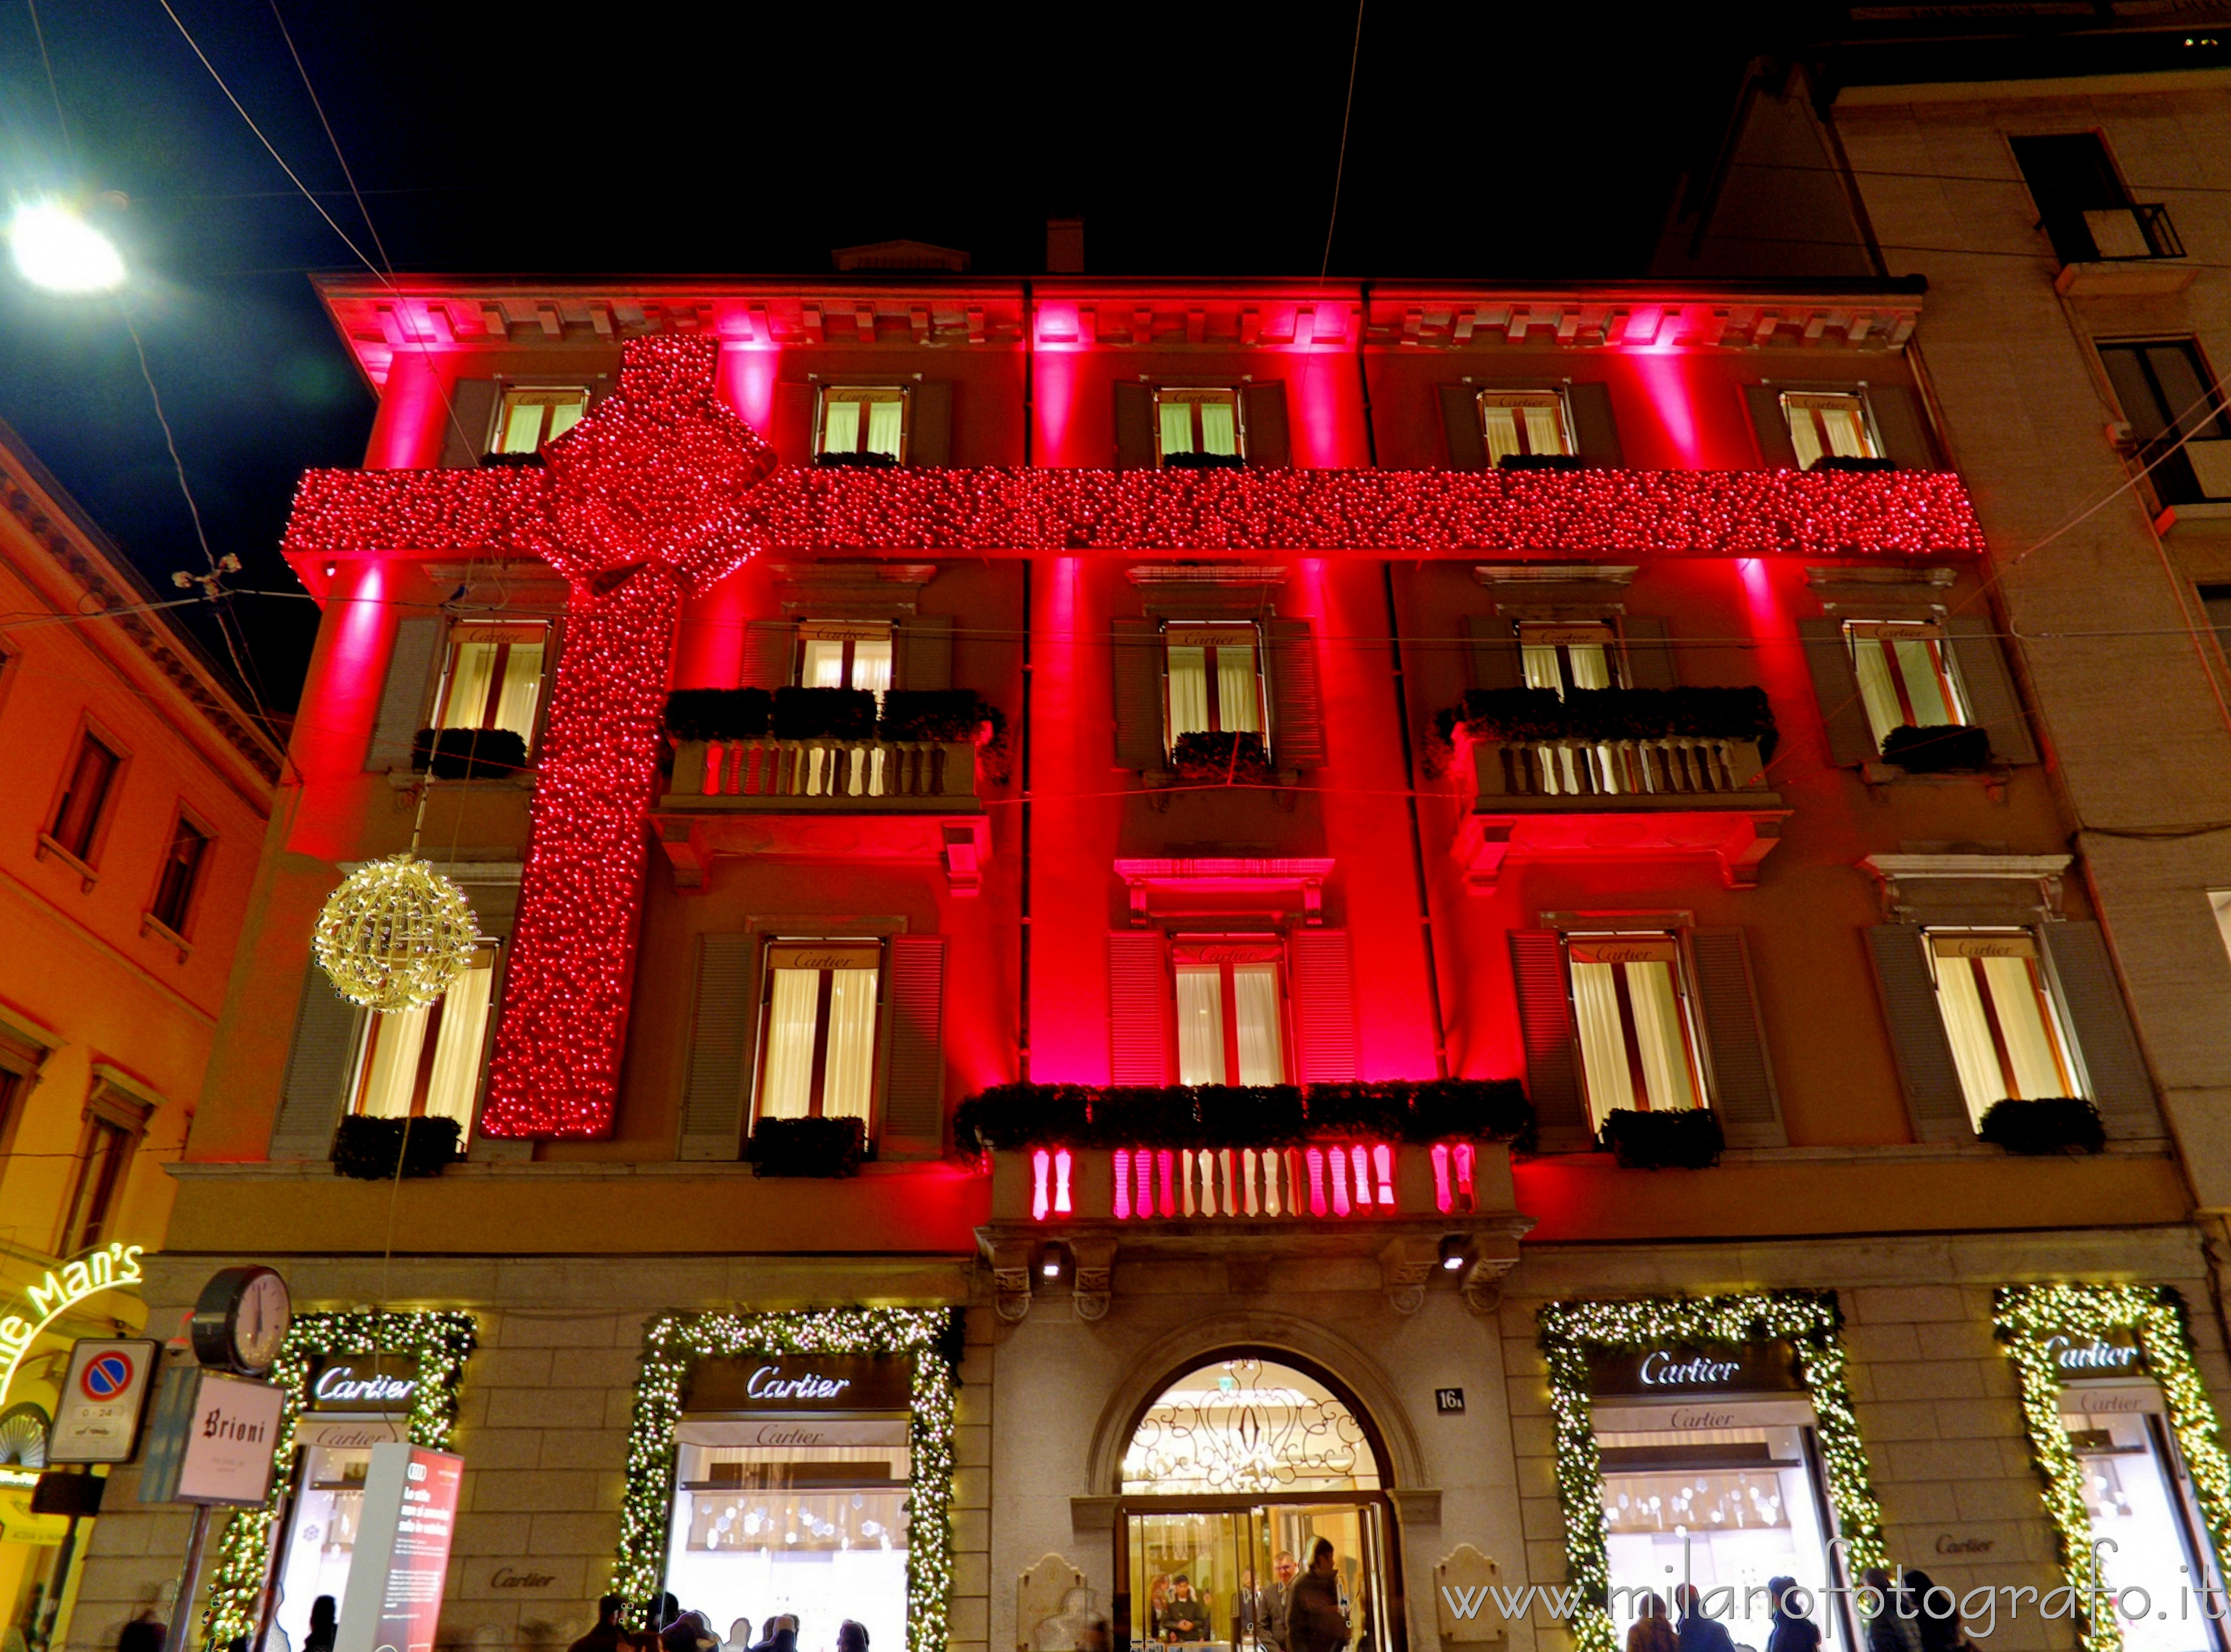 Milan (Italy): The Milan seat of Cartier with Christmas lights - Milan (Italy)